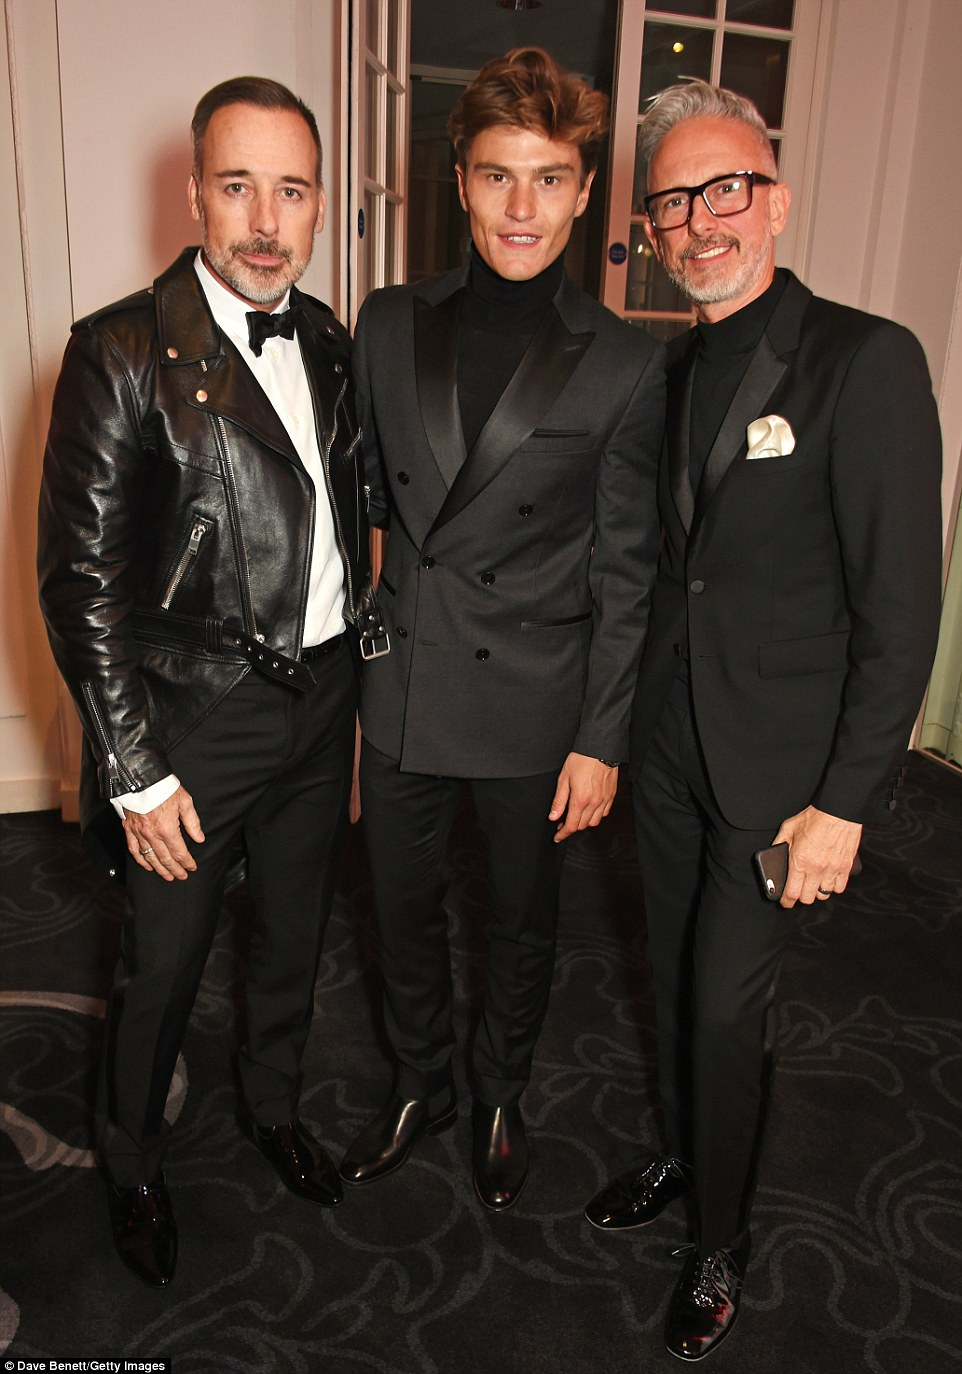 A great turnout: David (pictured with model Oliver Cheshire and Patrick) was in attendance to throw his support behind his husband Elton John's AIDs Foundation, of which the awards show was helping raise funds